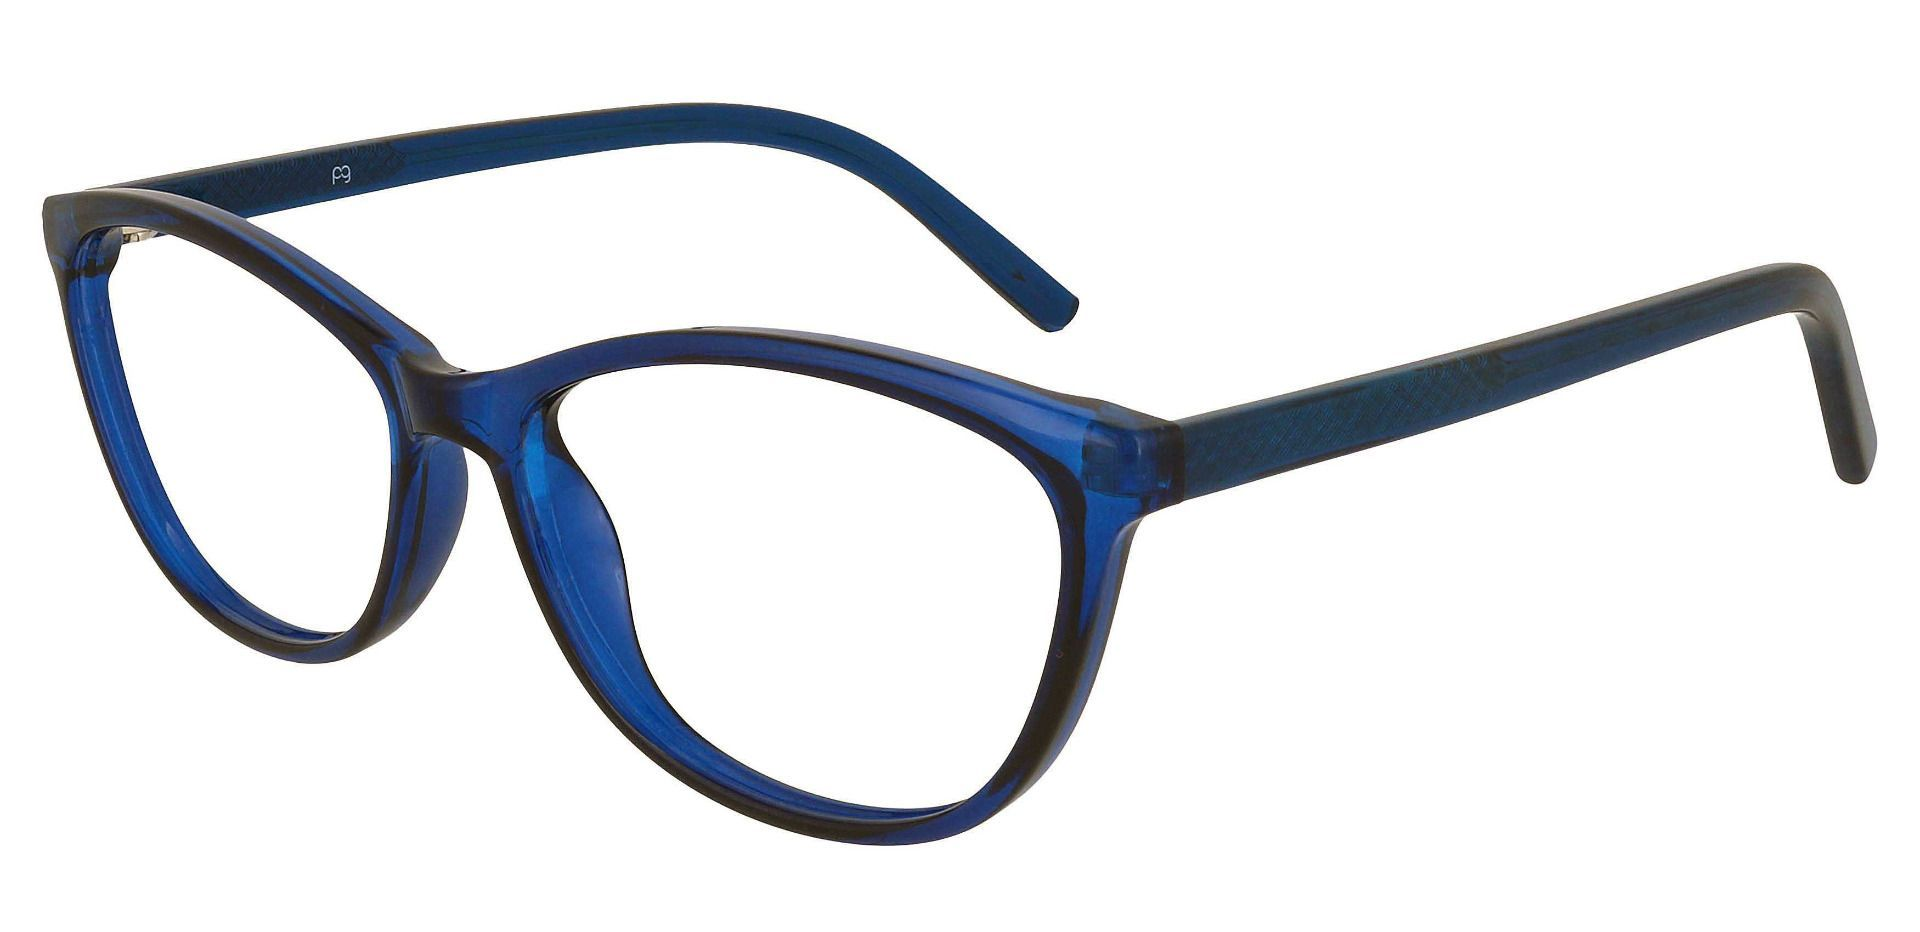 Sally Oval Prescription Glasses - Blue